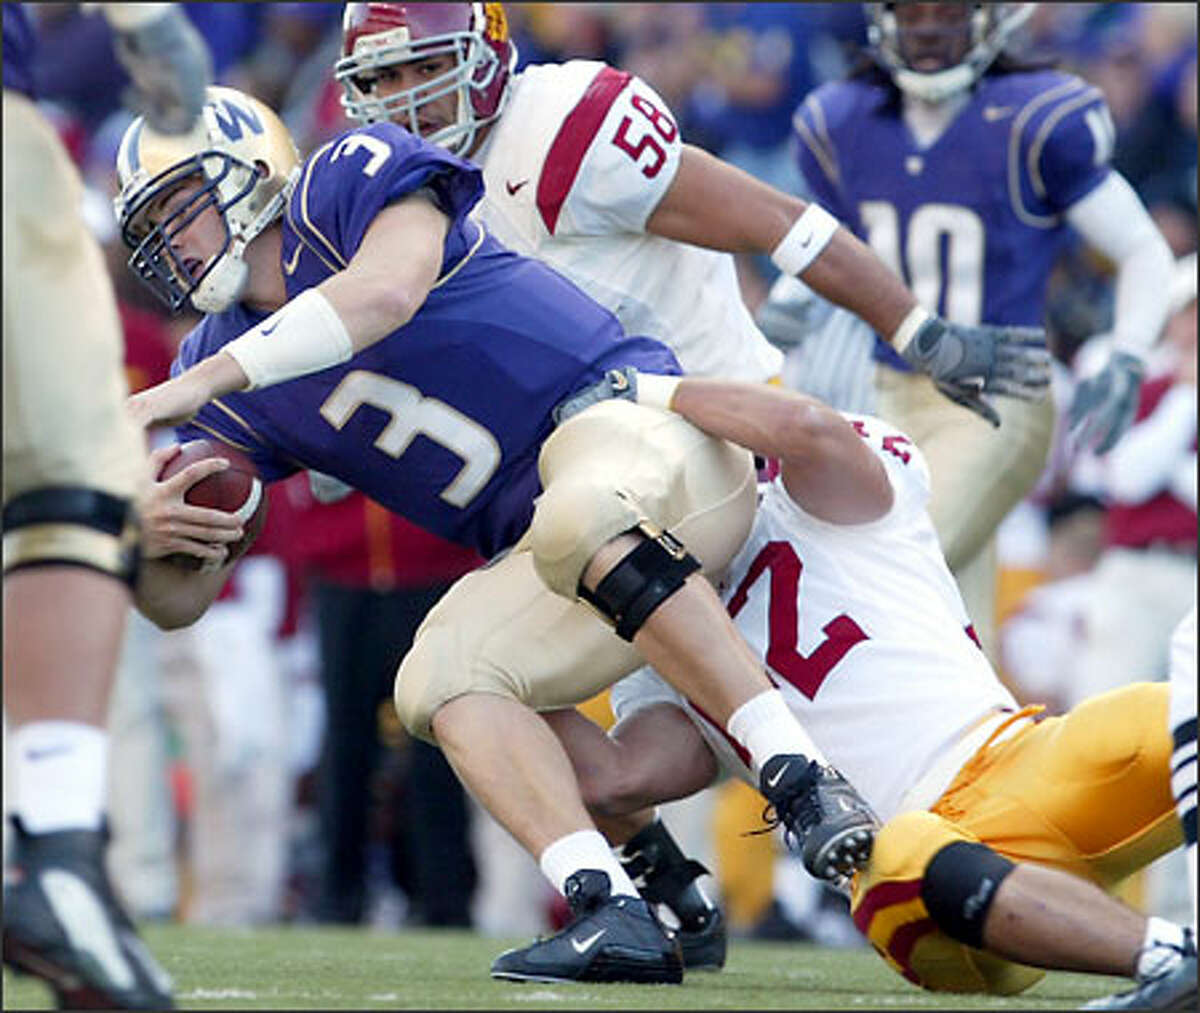 UW's Cody Pickett gets tackled in the first quarter.